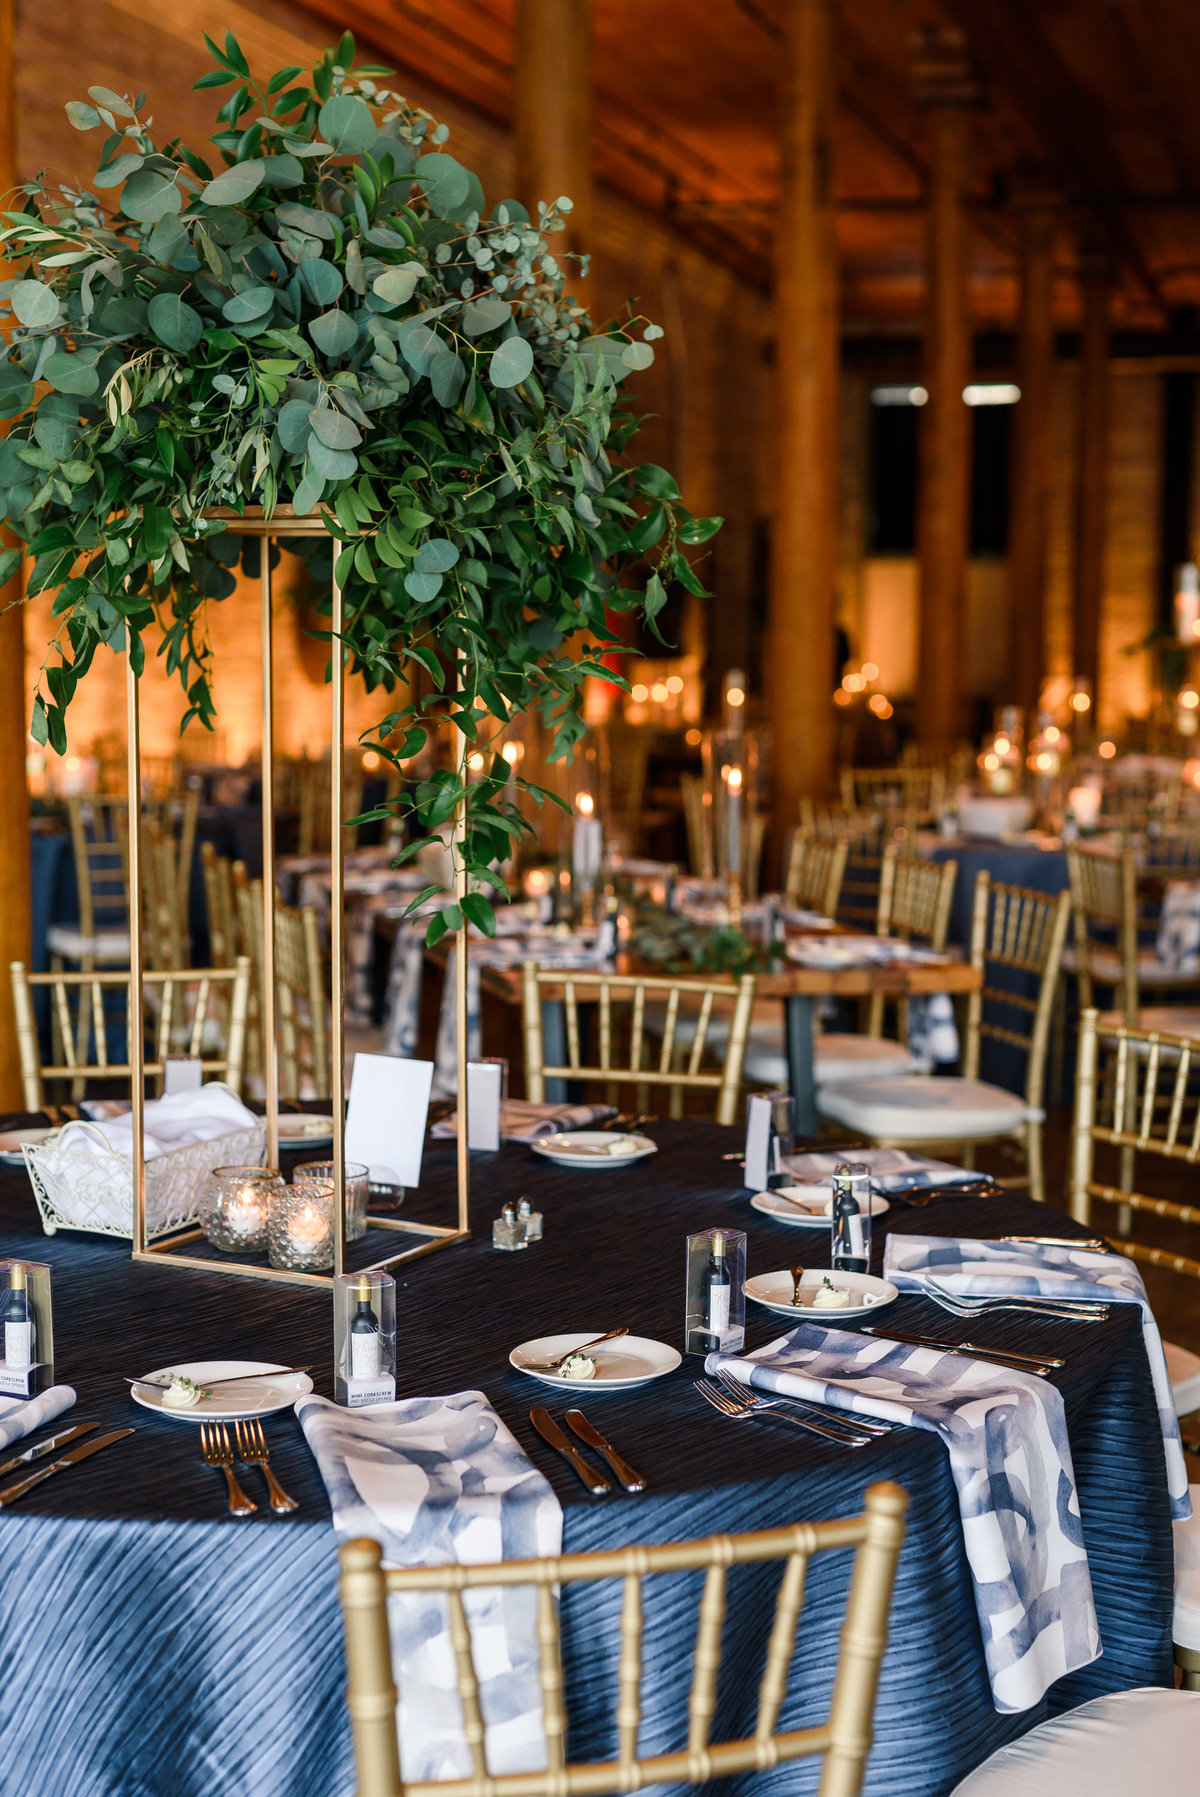 pritzlaff-events-wedding-the-paper-elephant-0080